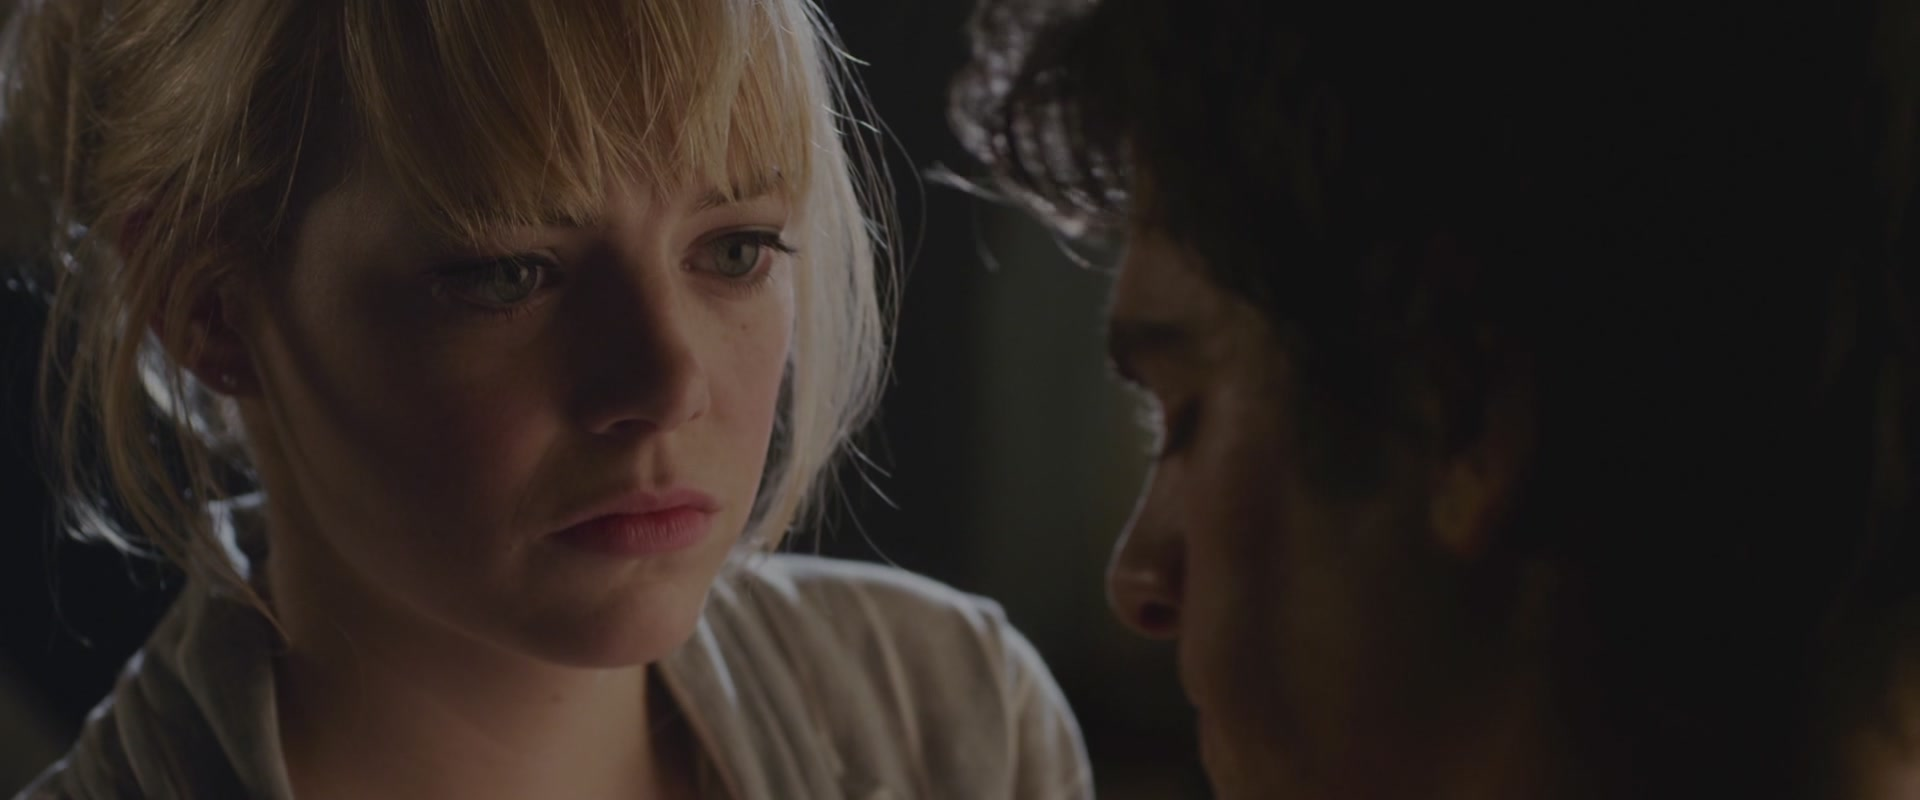 peter parker amp gwen stacy images the amazing spiderman